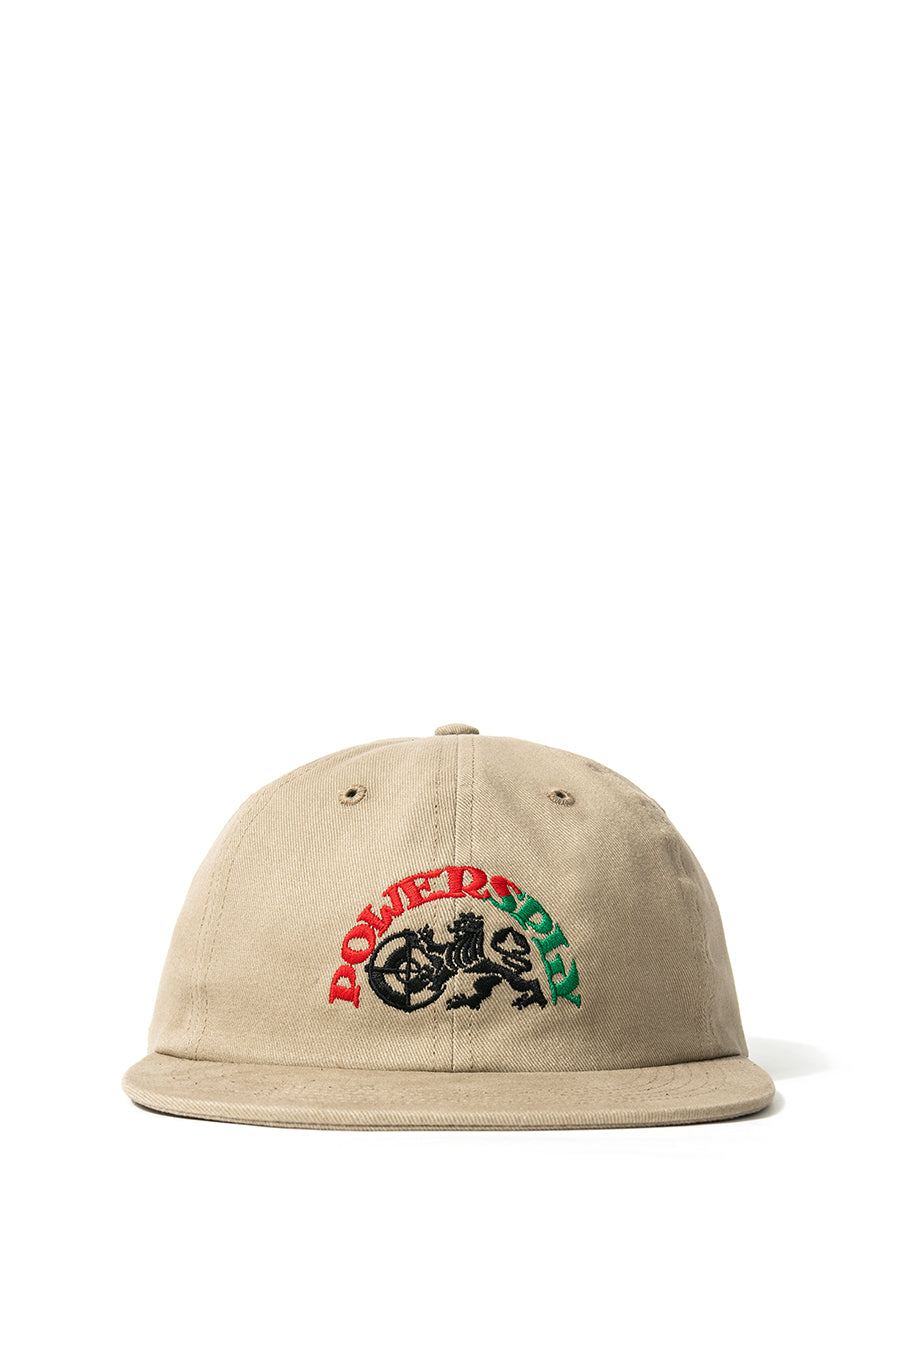 Powers Supply - Khaki Sply Hat